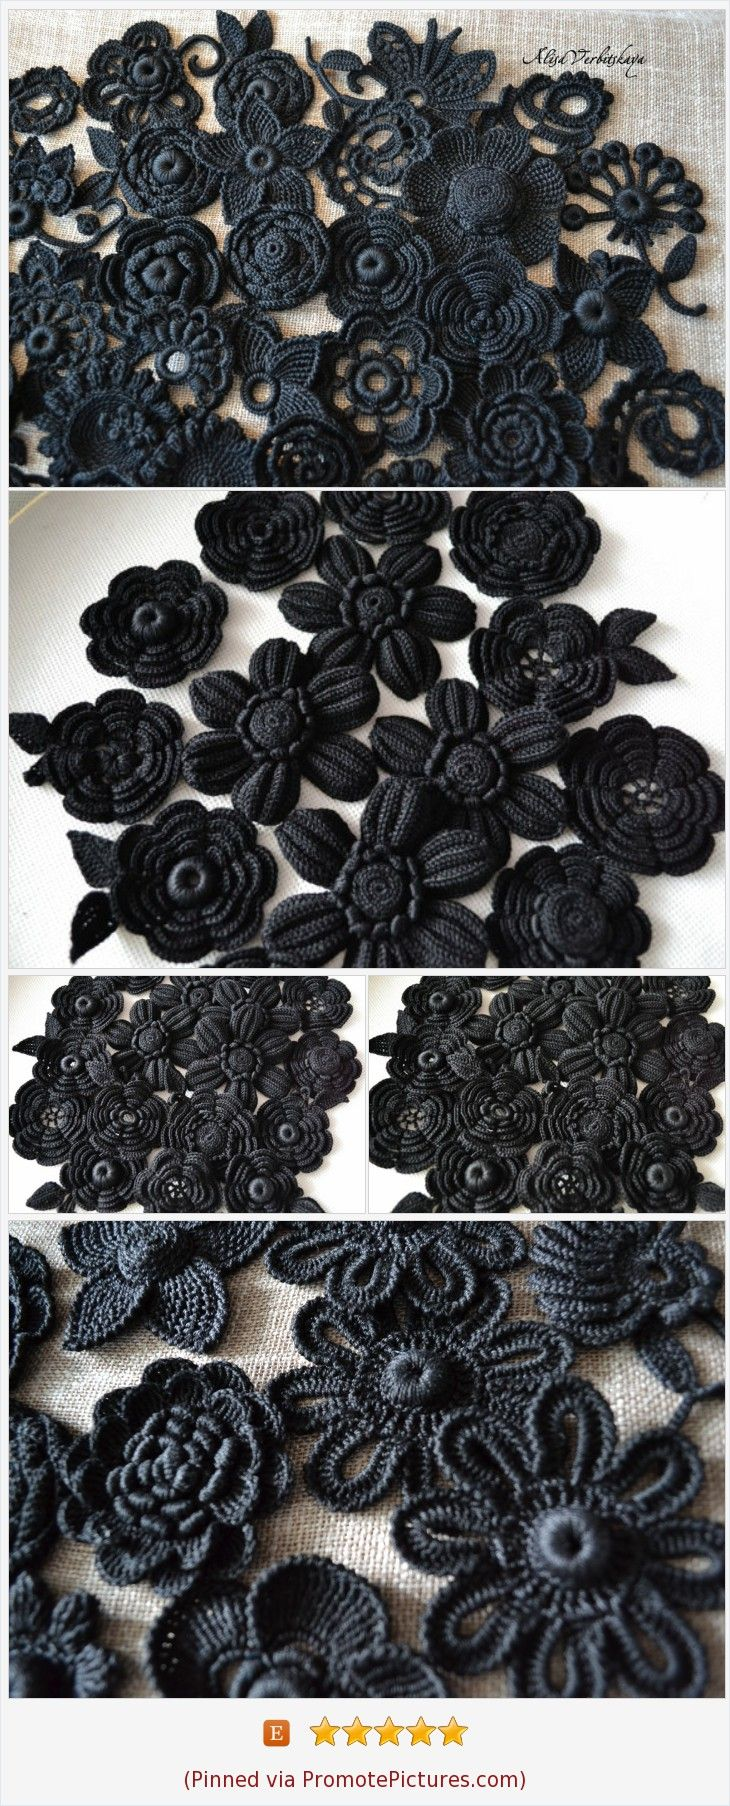 Gothic style flower Goth Witch accessories Dark Victorian Diy kit Irish crochet Set flower Black Rose Crochet flower Black wedding 10pcs https://www.etsy.com/AlisaSonya/listing/494412449/gothic-style-flower-goth-witch?ref=shop_home_active_74 (Pinned using https://PromotePictures.com)